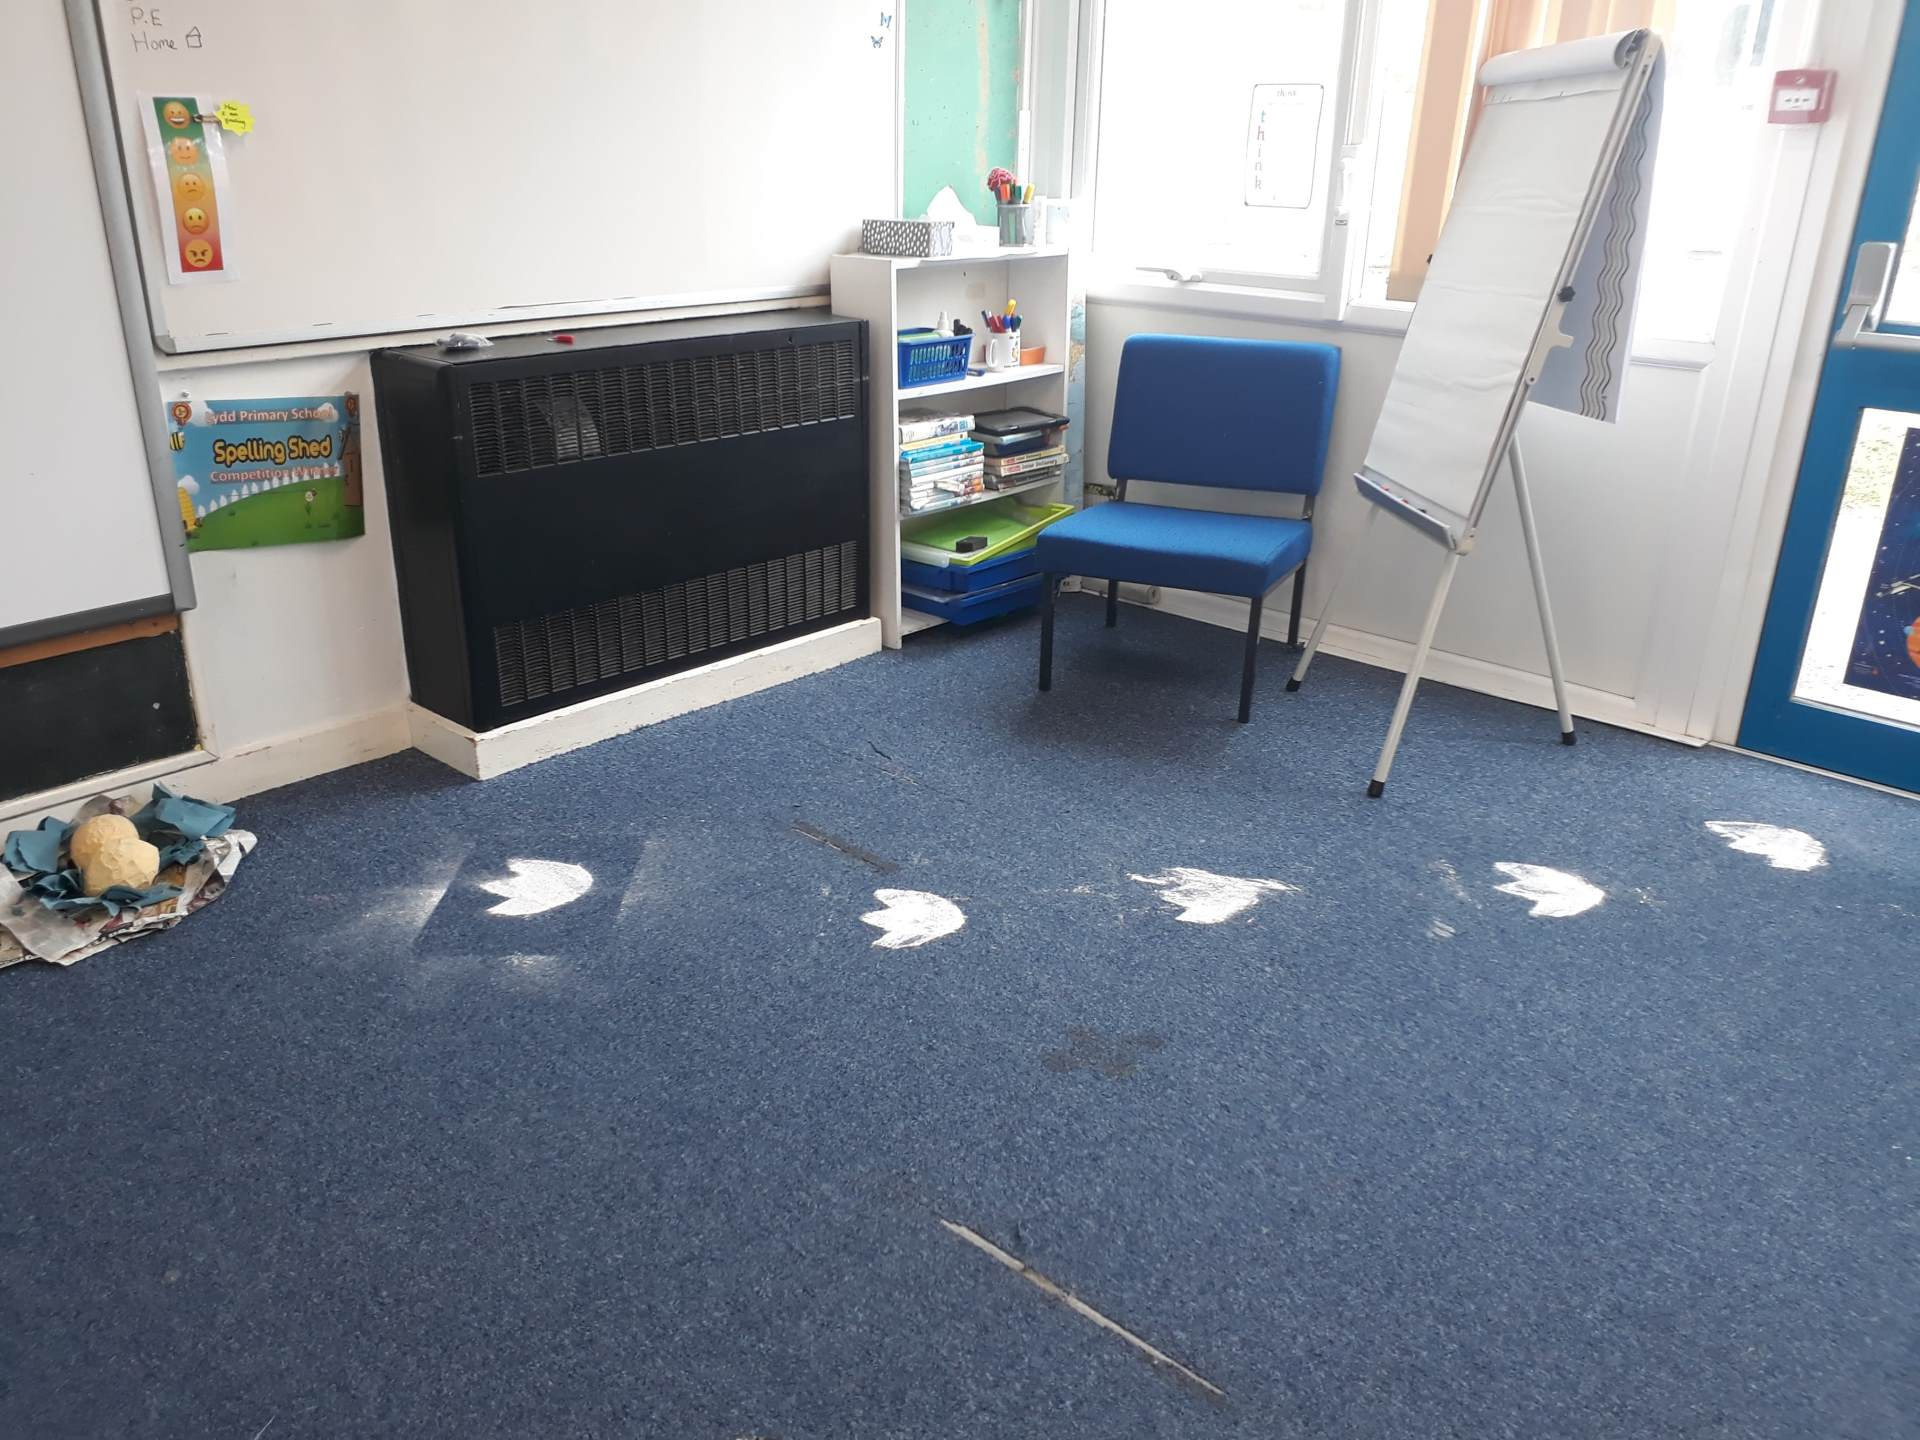 Something has been in Squirrel Class! We did a lot of investigating of the footprints and the nest with 2 eggs inside.